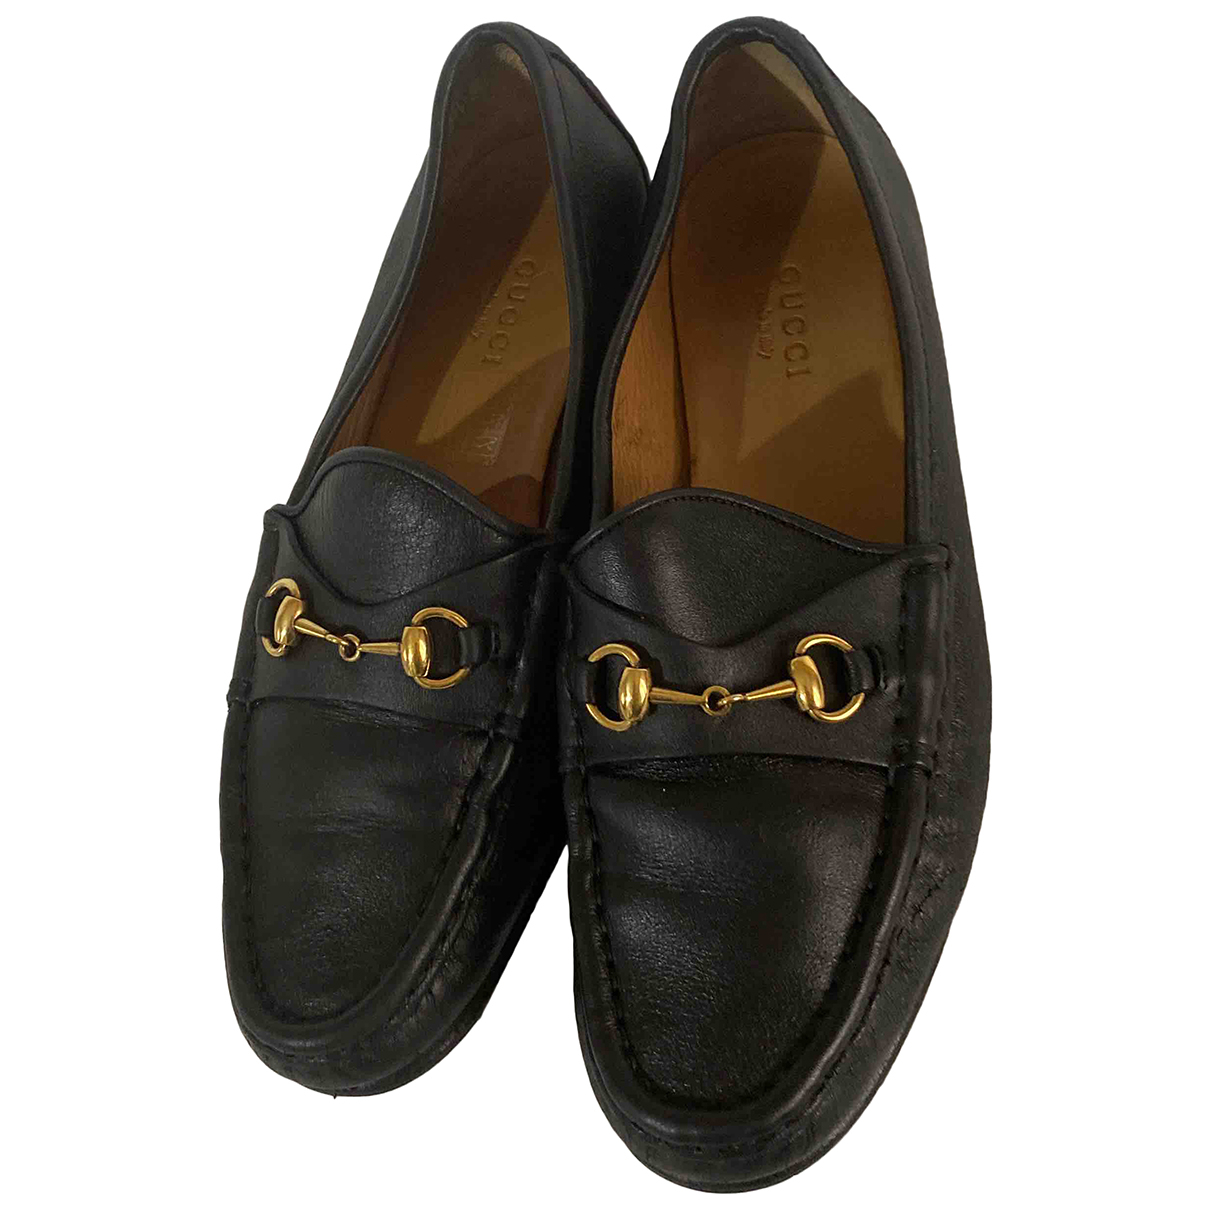 Gucci N Black Leather Flats for Women 36 EU